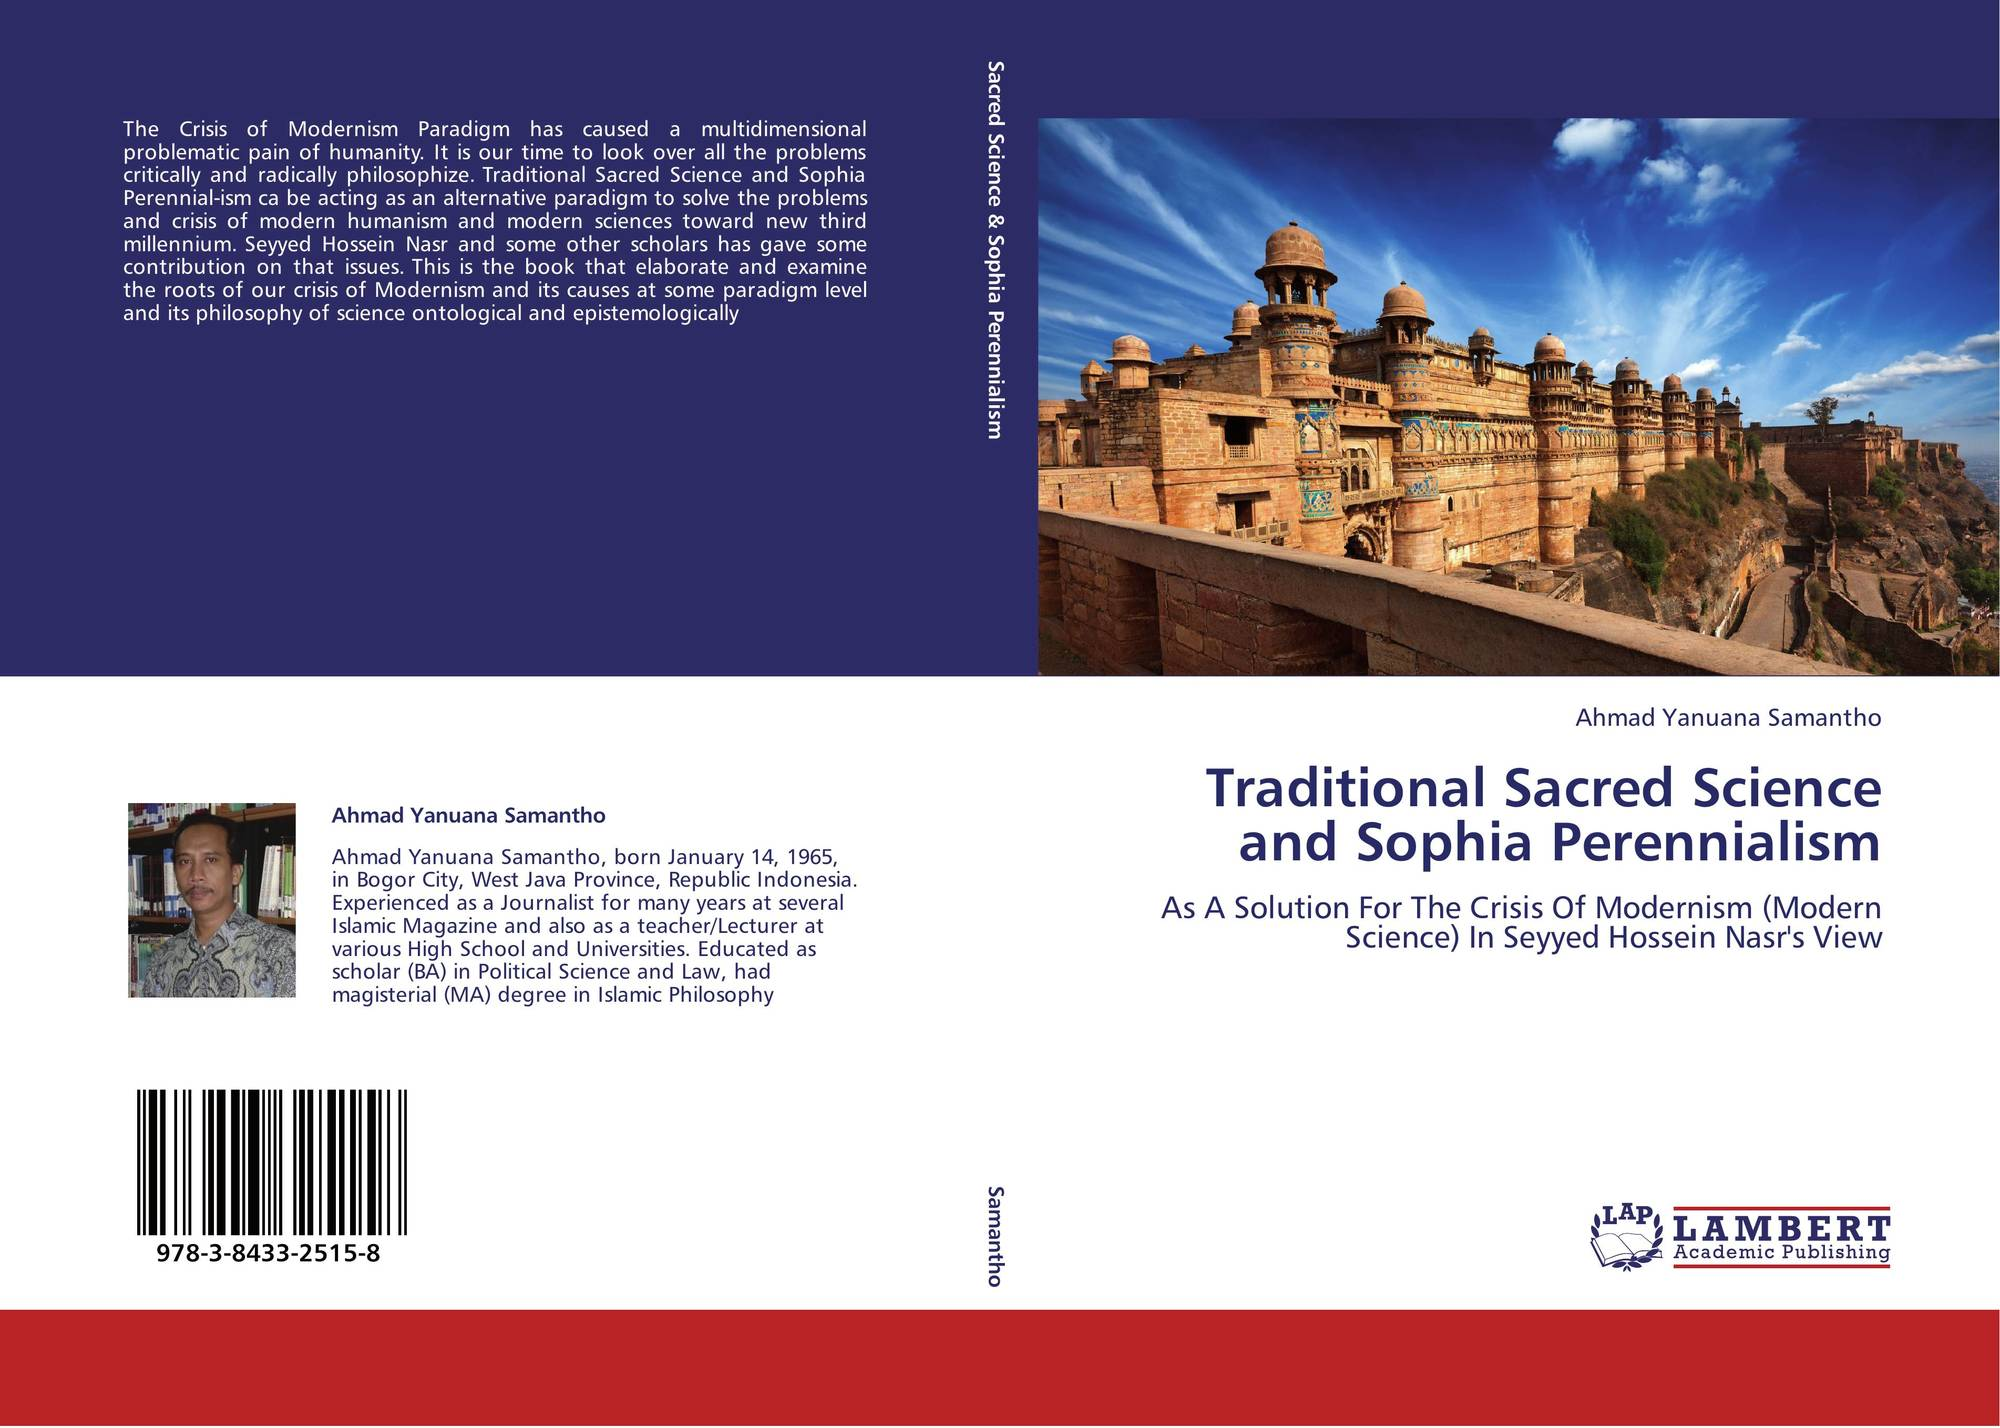 Traditional Sacred Science and Sophia Perennialism